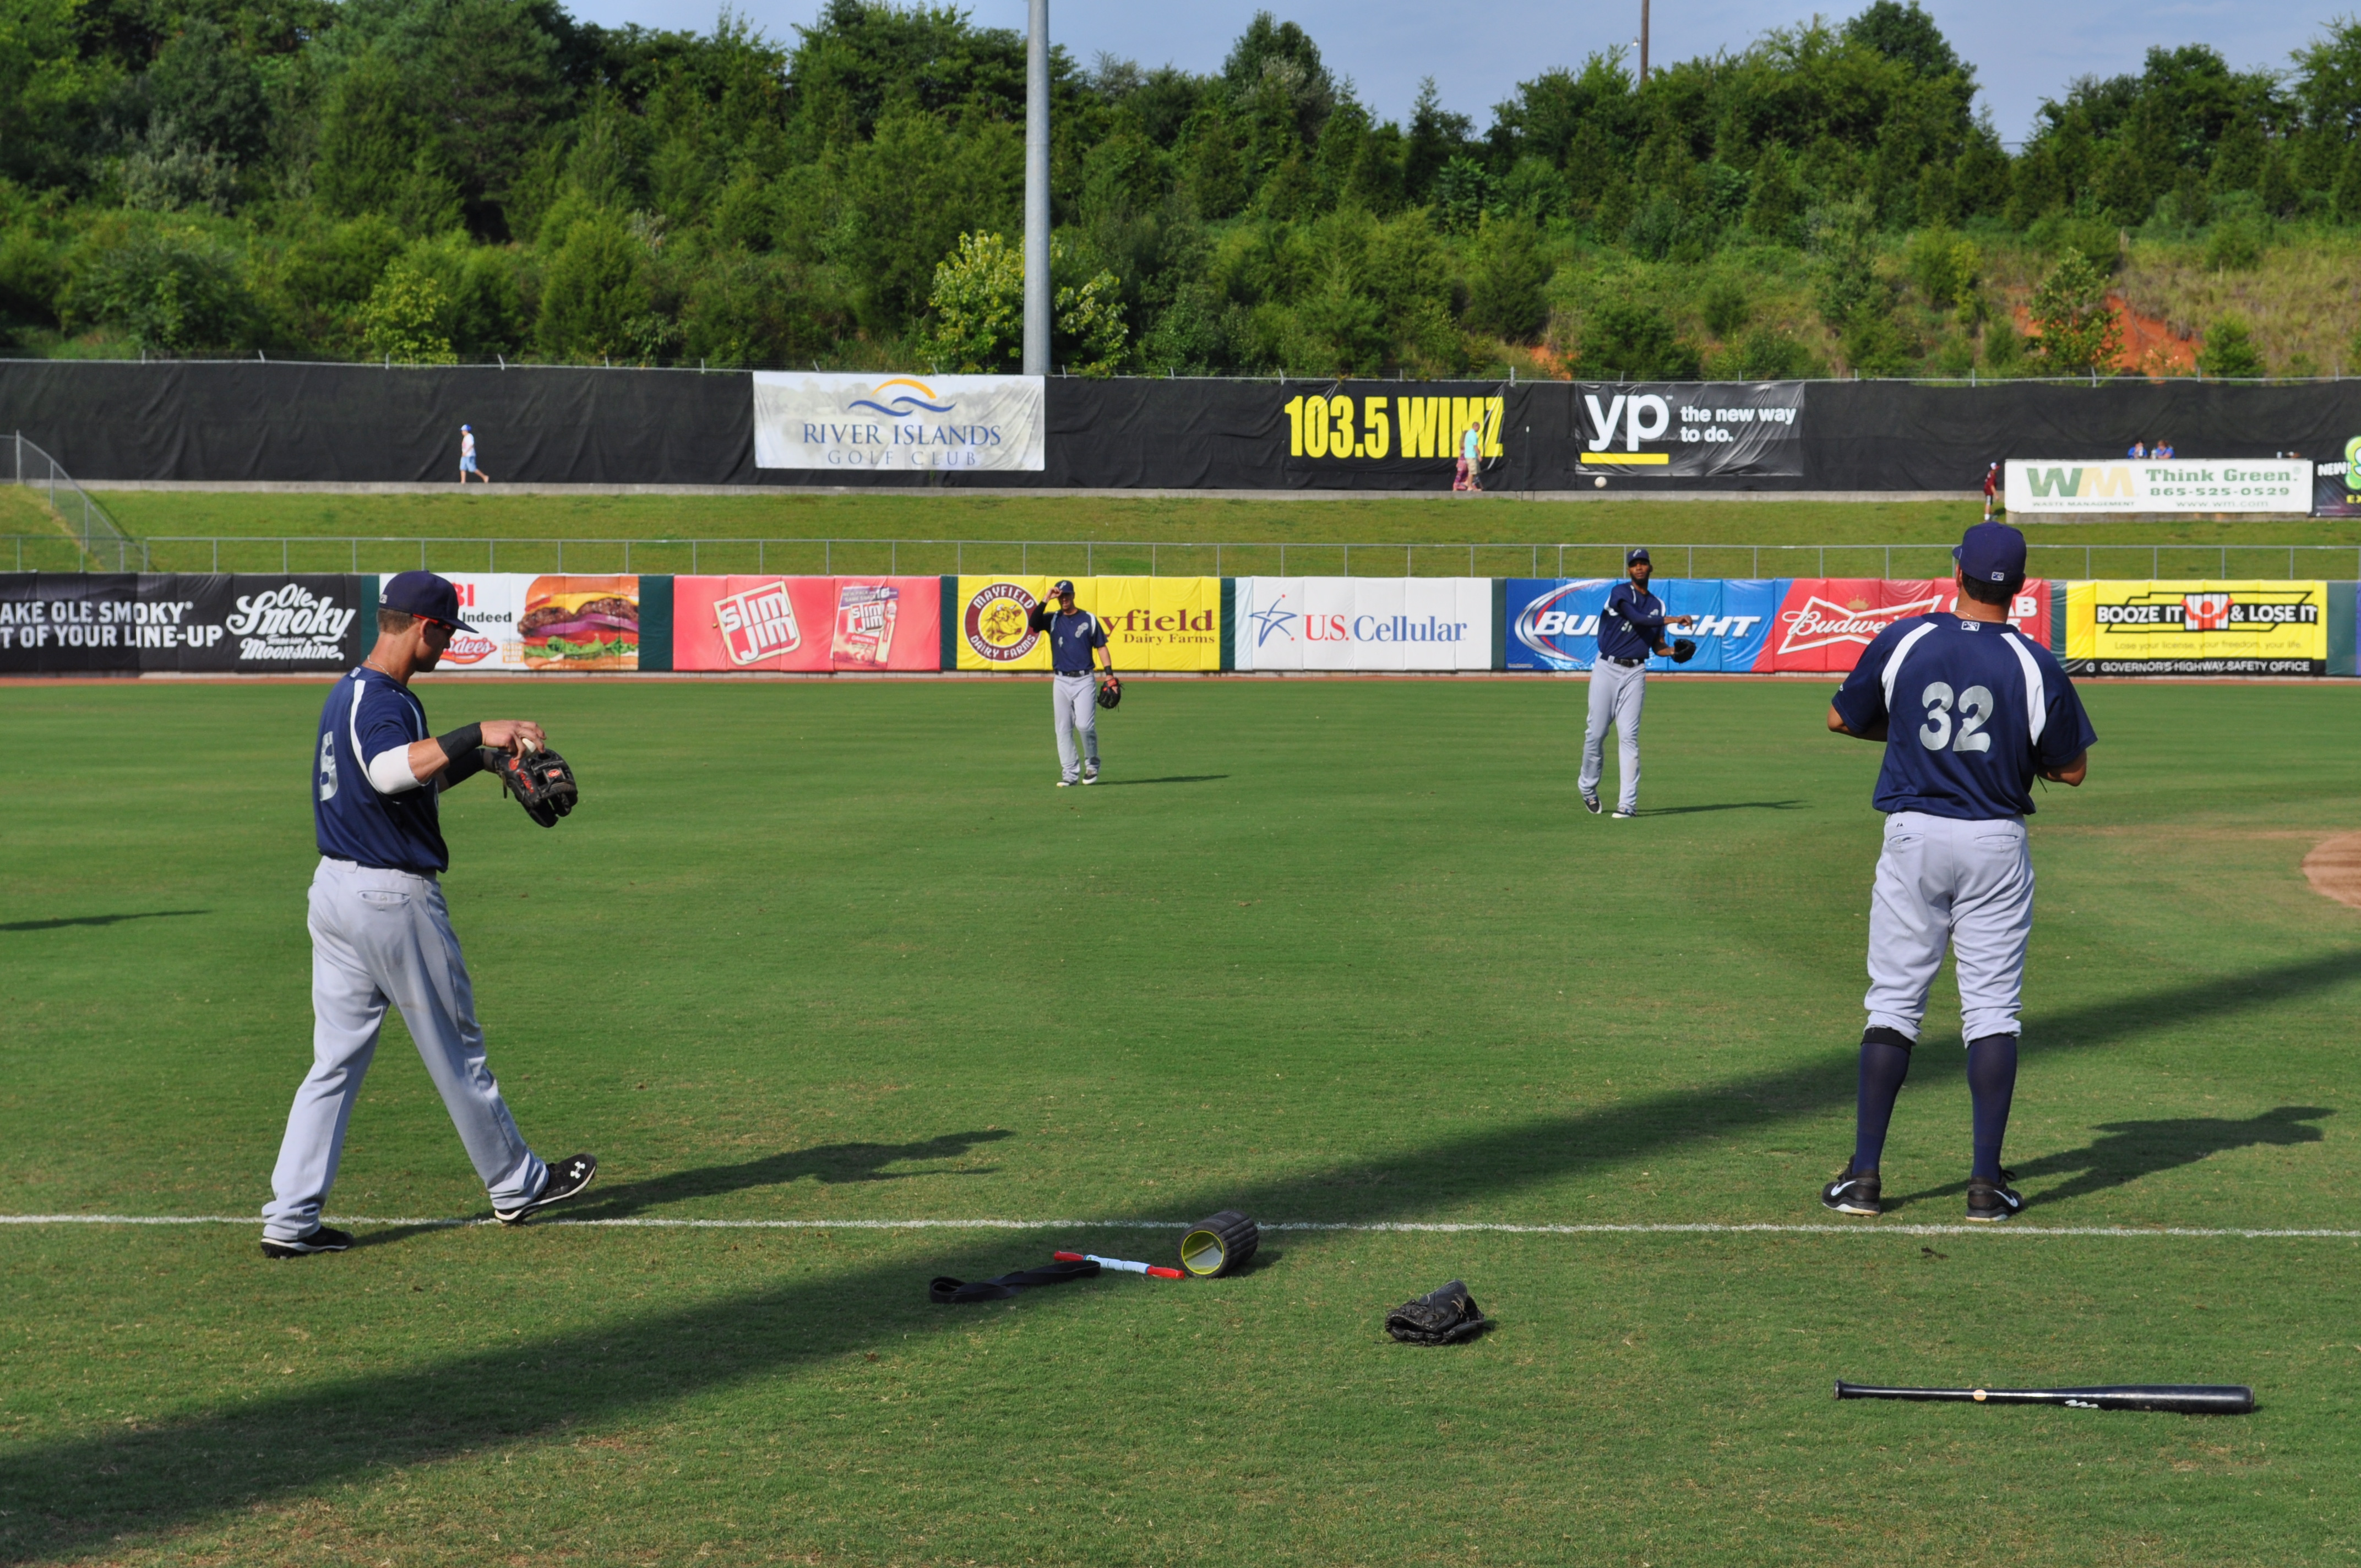 2B Devin Lohman (#8) with SS Brodie Greene (#4) and 3B Seth Mejias-Brean (#32) with RF Juan Duran (#31)  loosening up before Saturday evening's game.